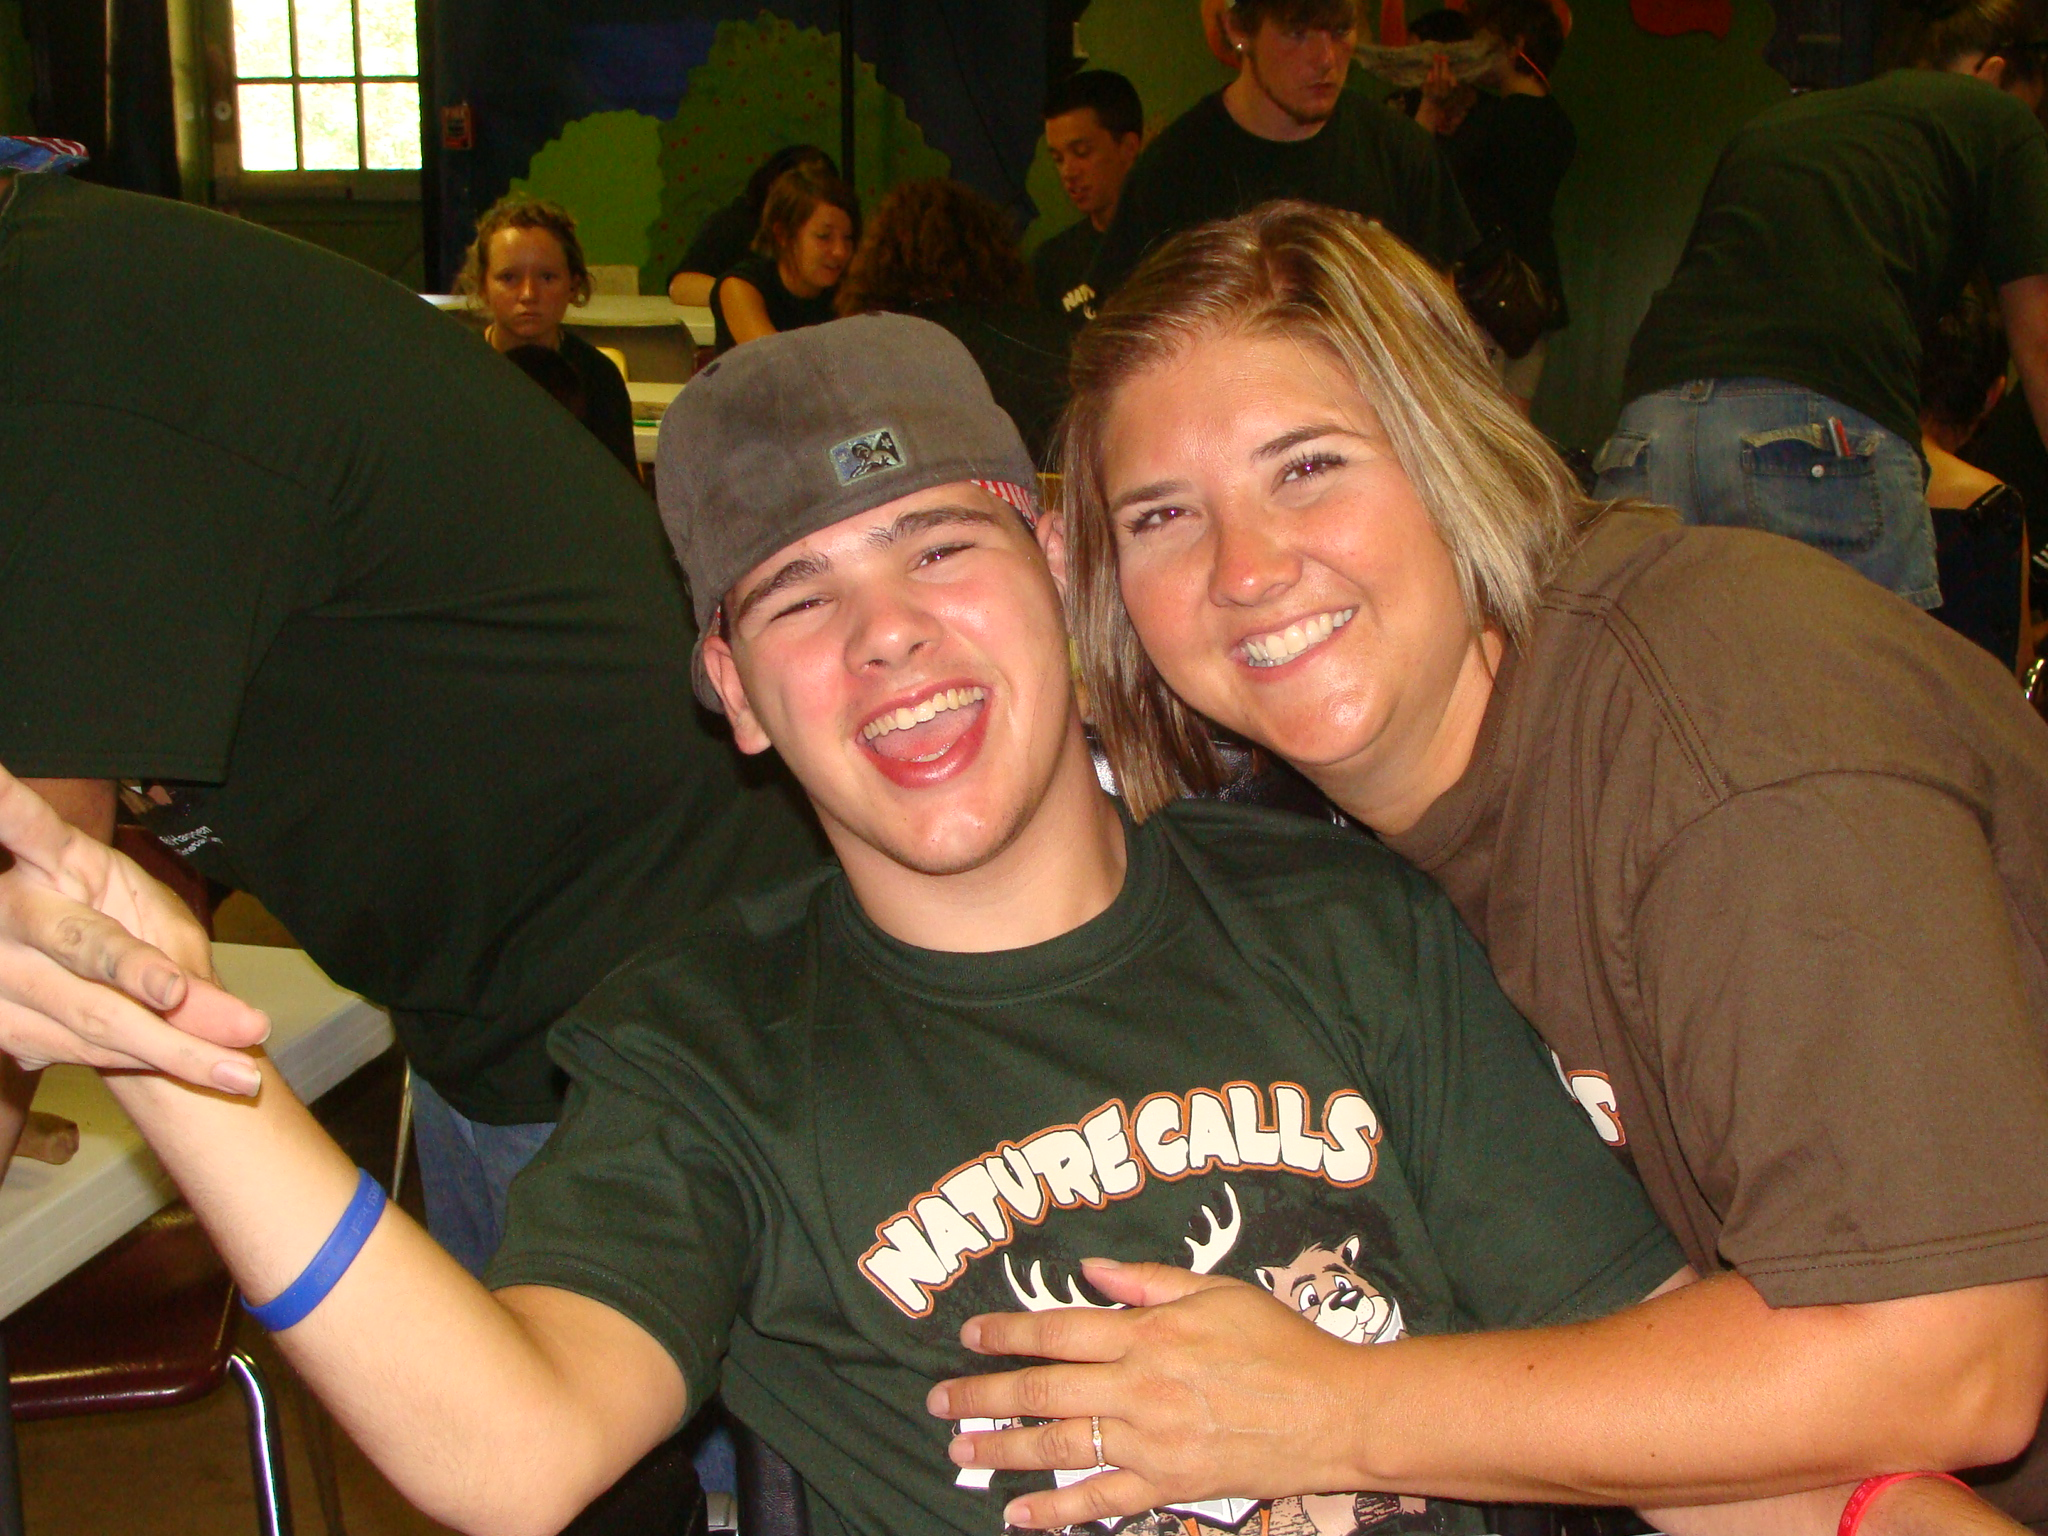 Nick and Carrie camp friends